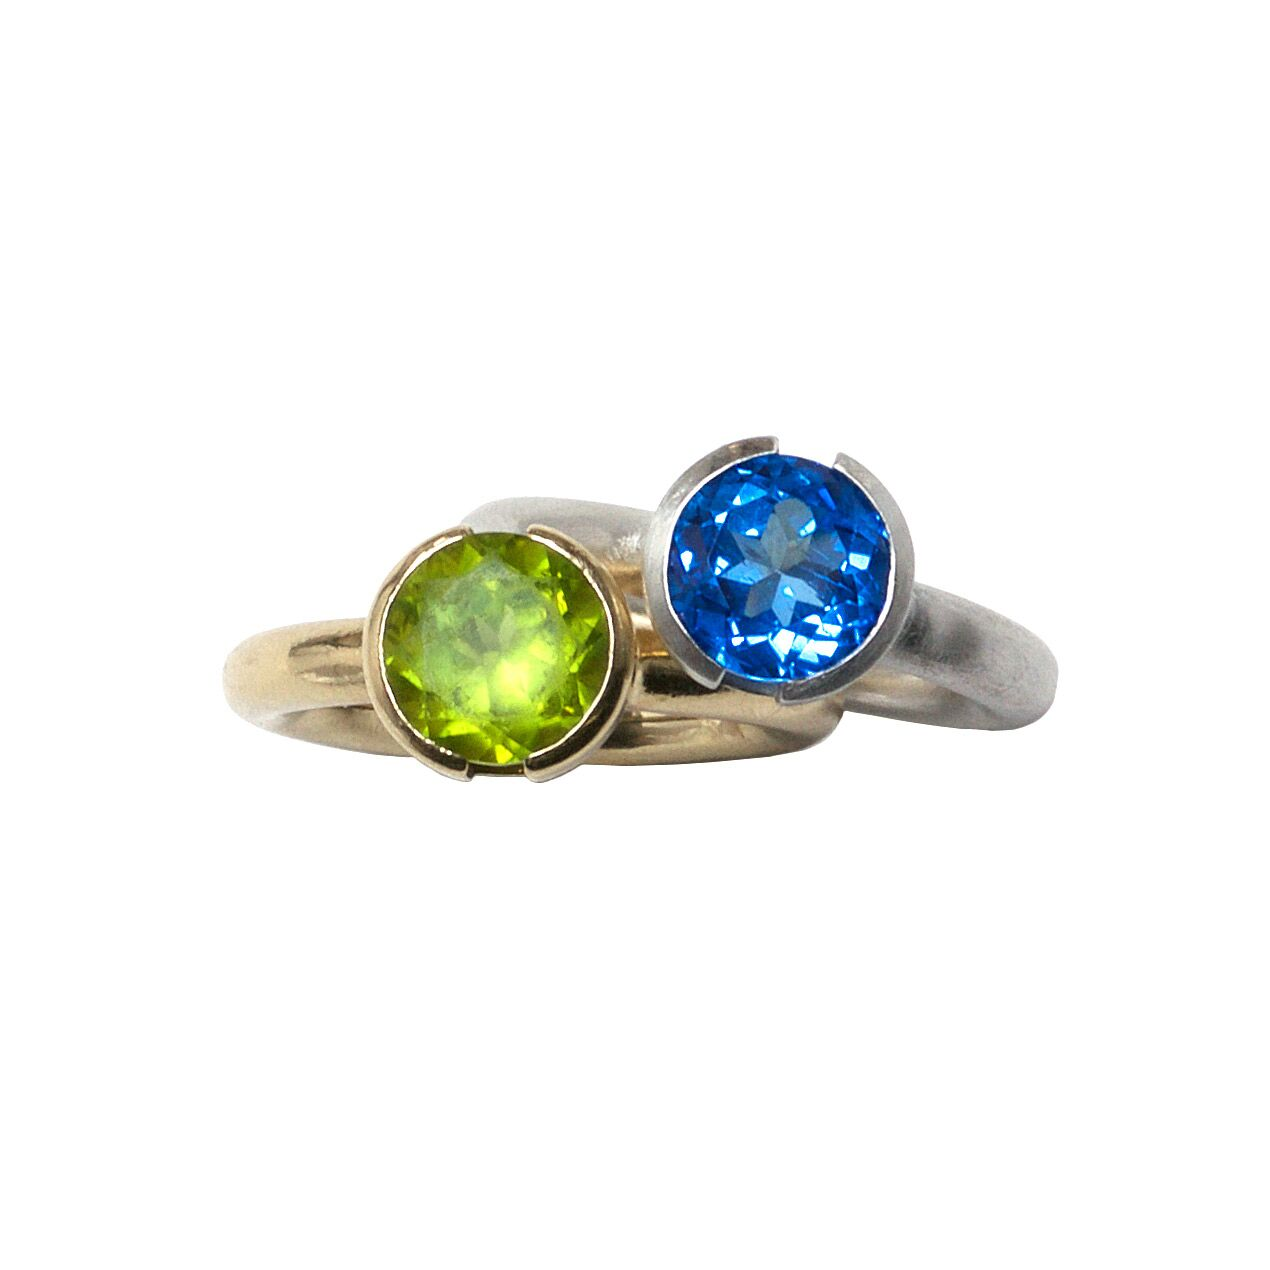 Peridot and Blue Topaz Rings